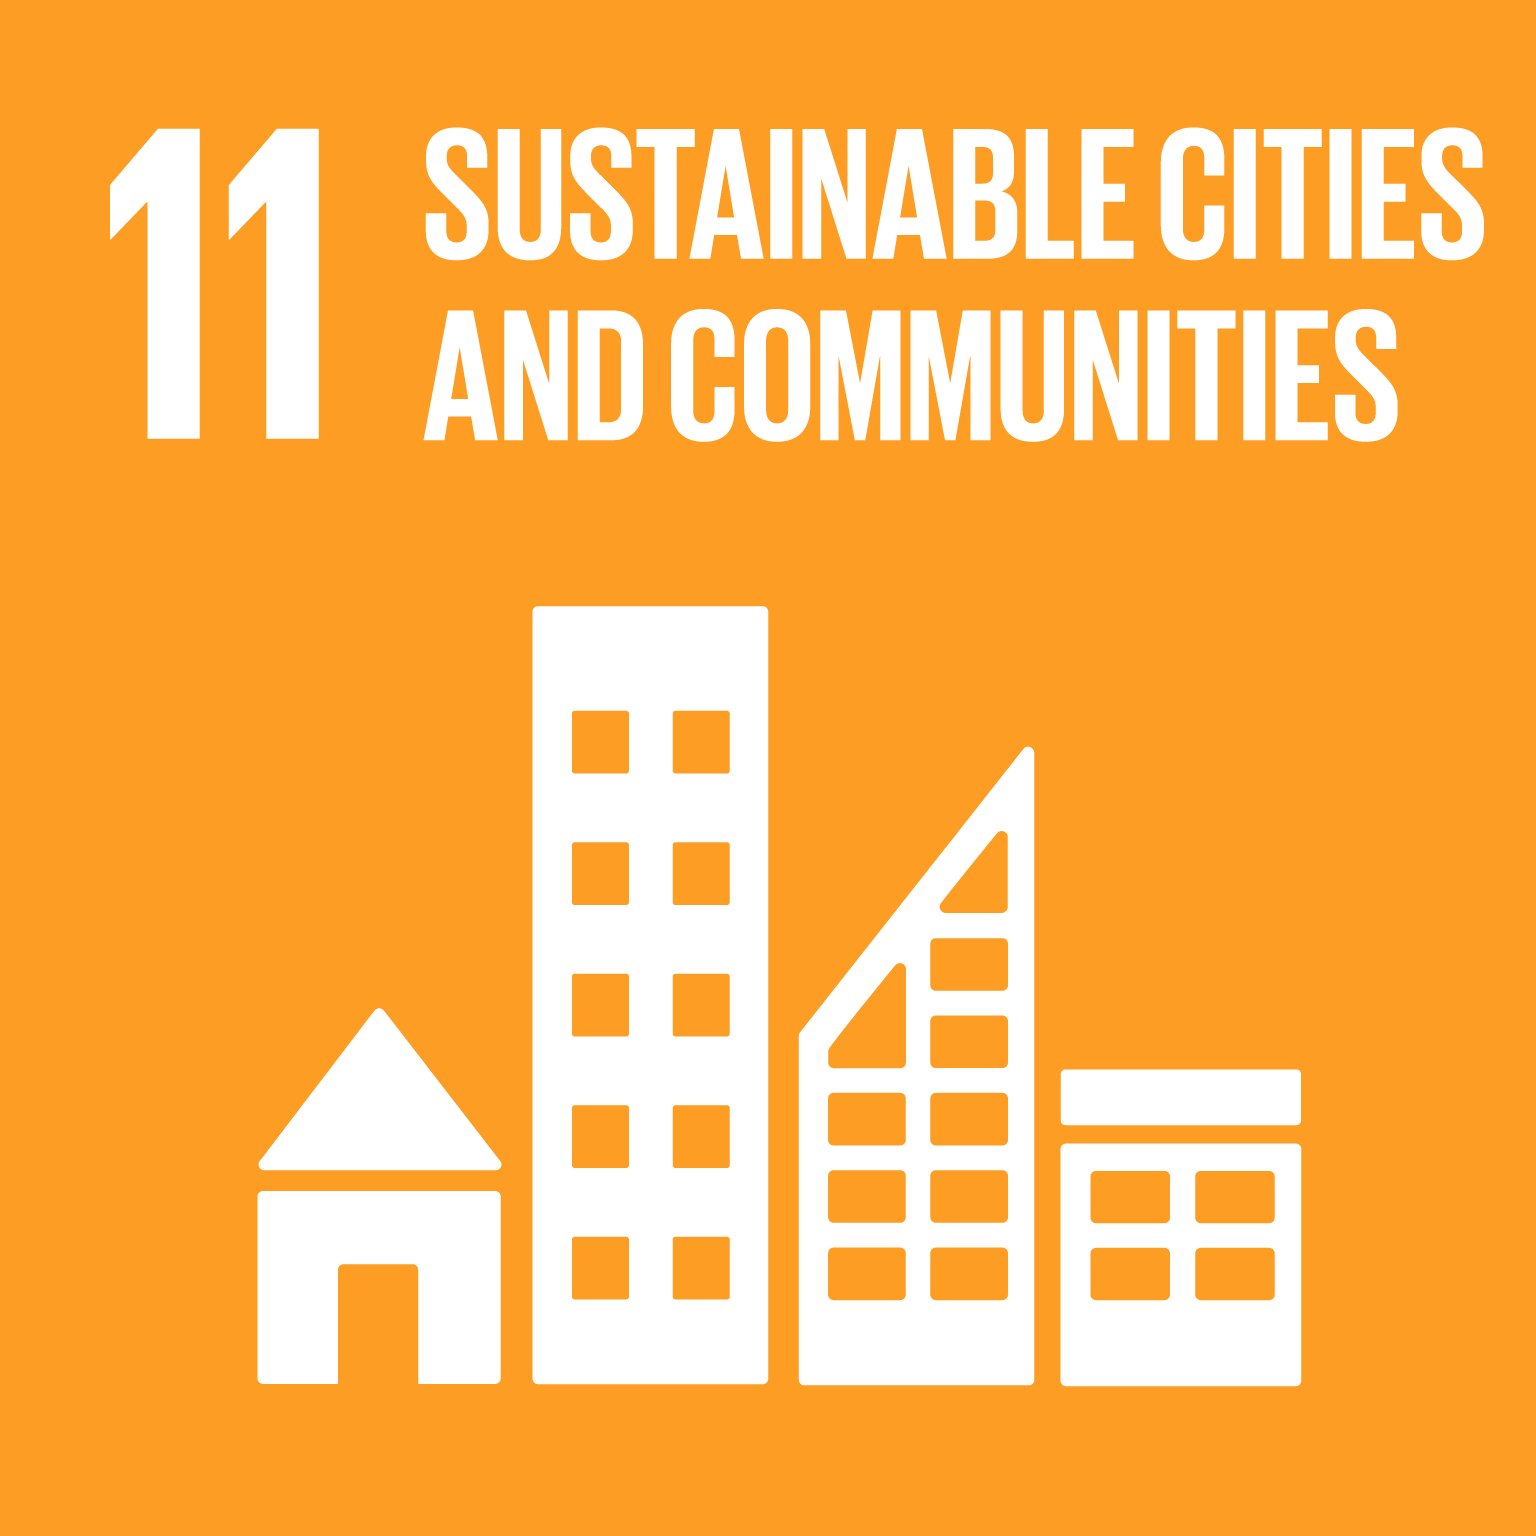 【SDGs logo】SUSTAINABLE CITIES AND COMMUNITIES